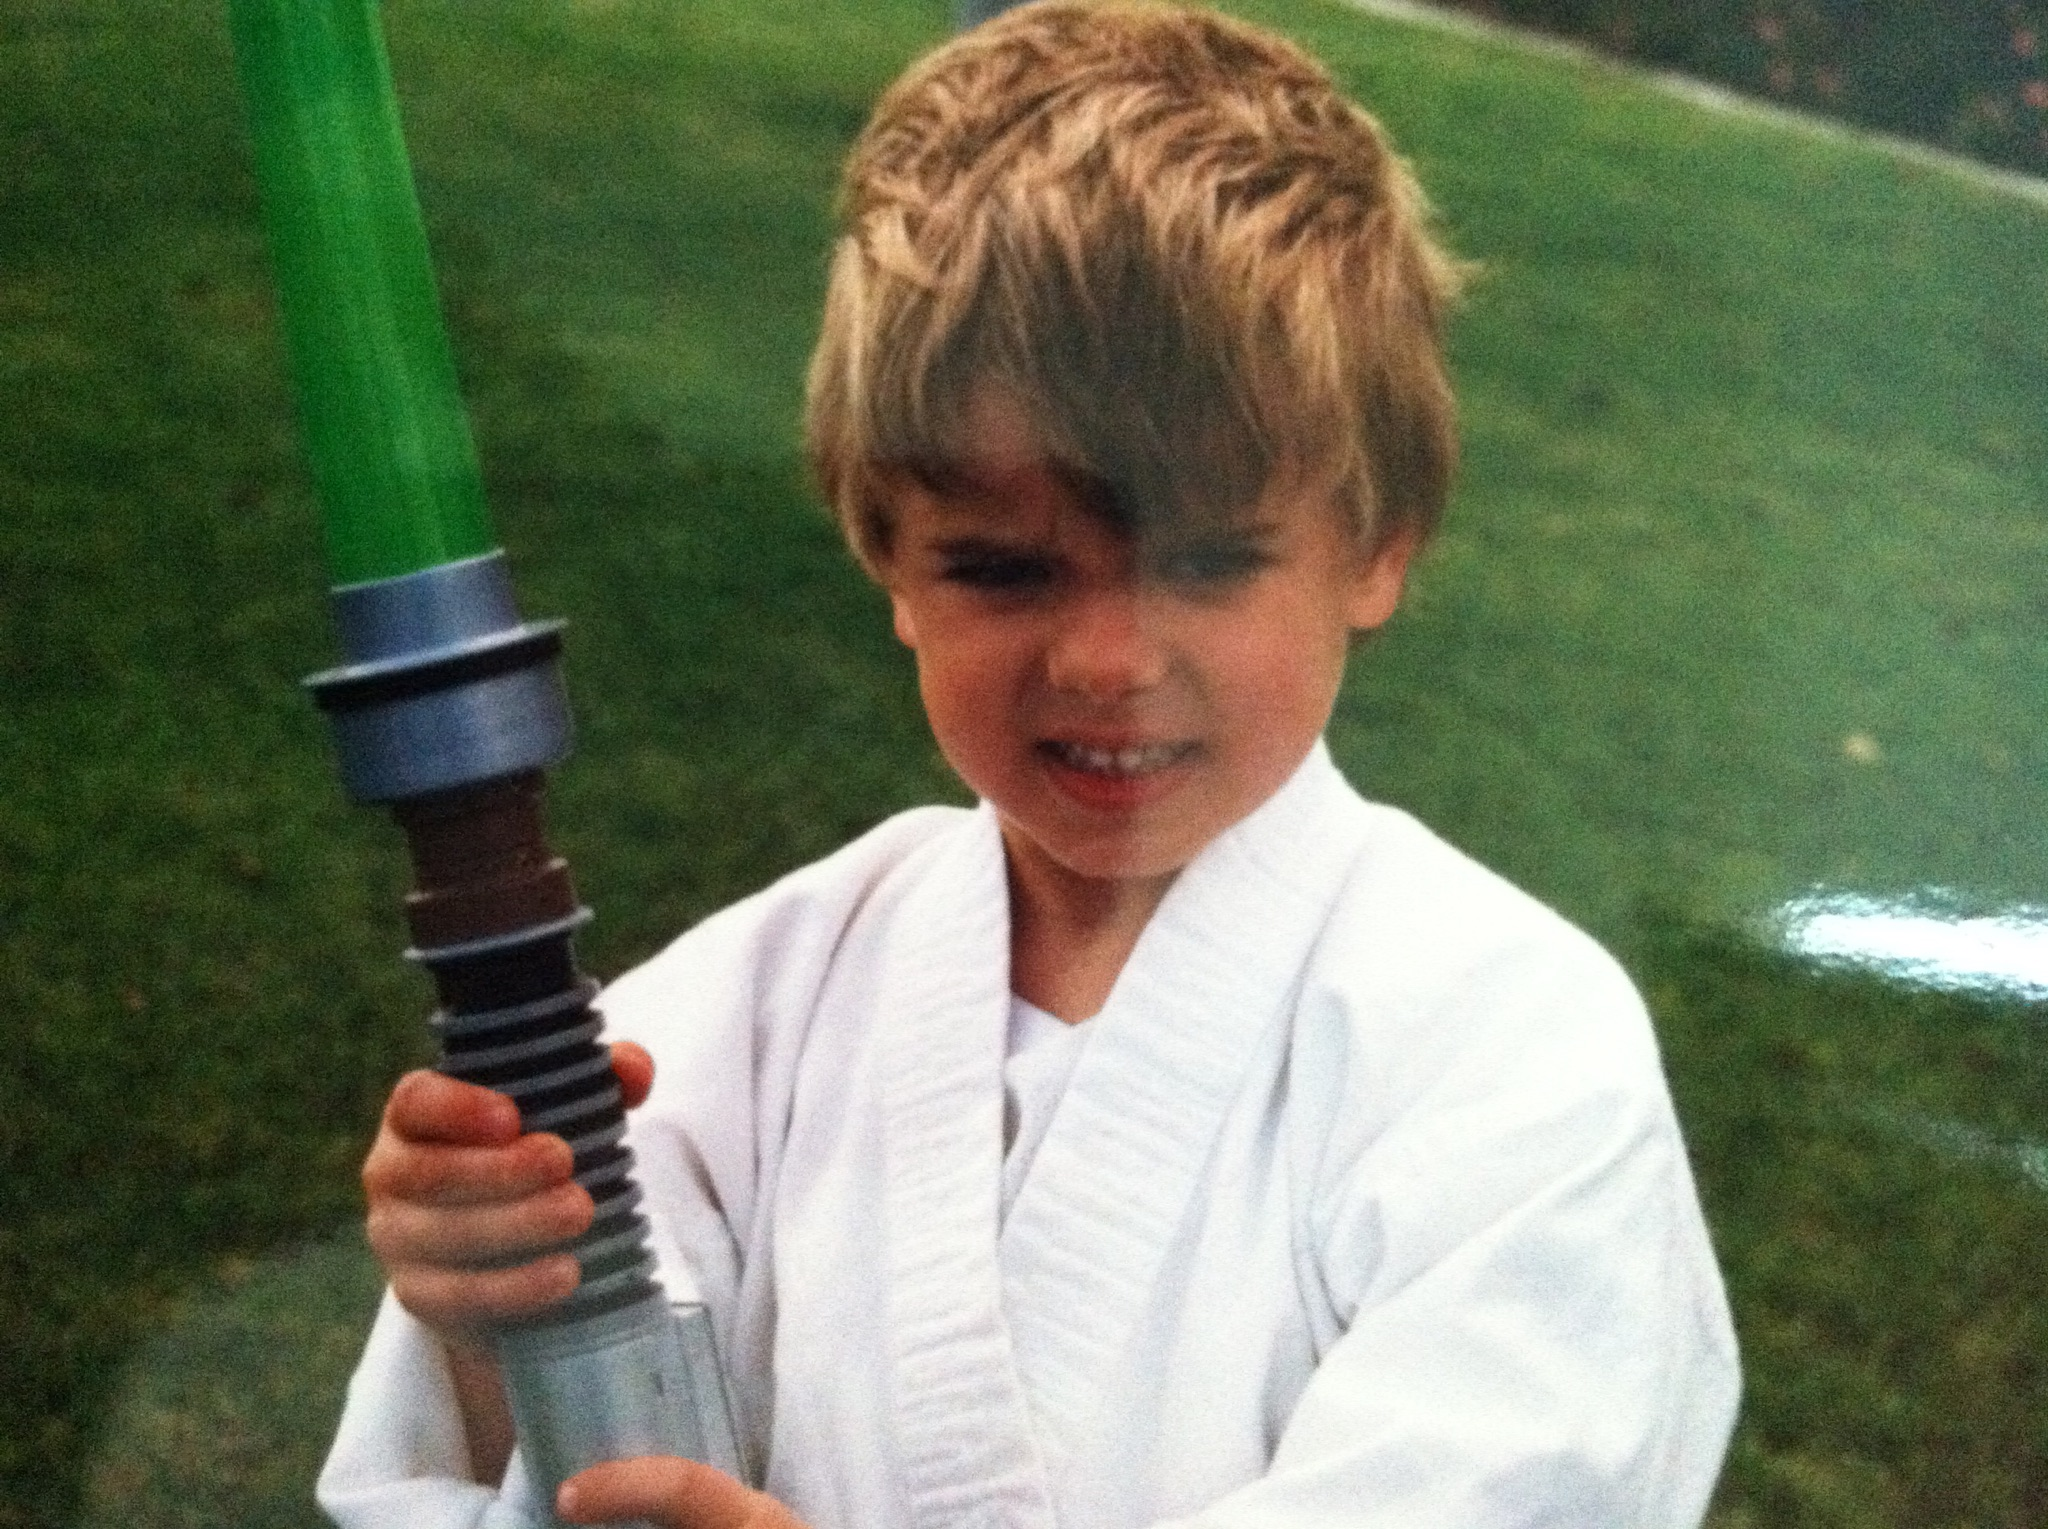 lITTLE KNOWN FACT: I was A JEDI.